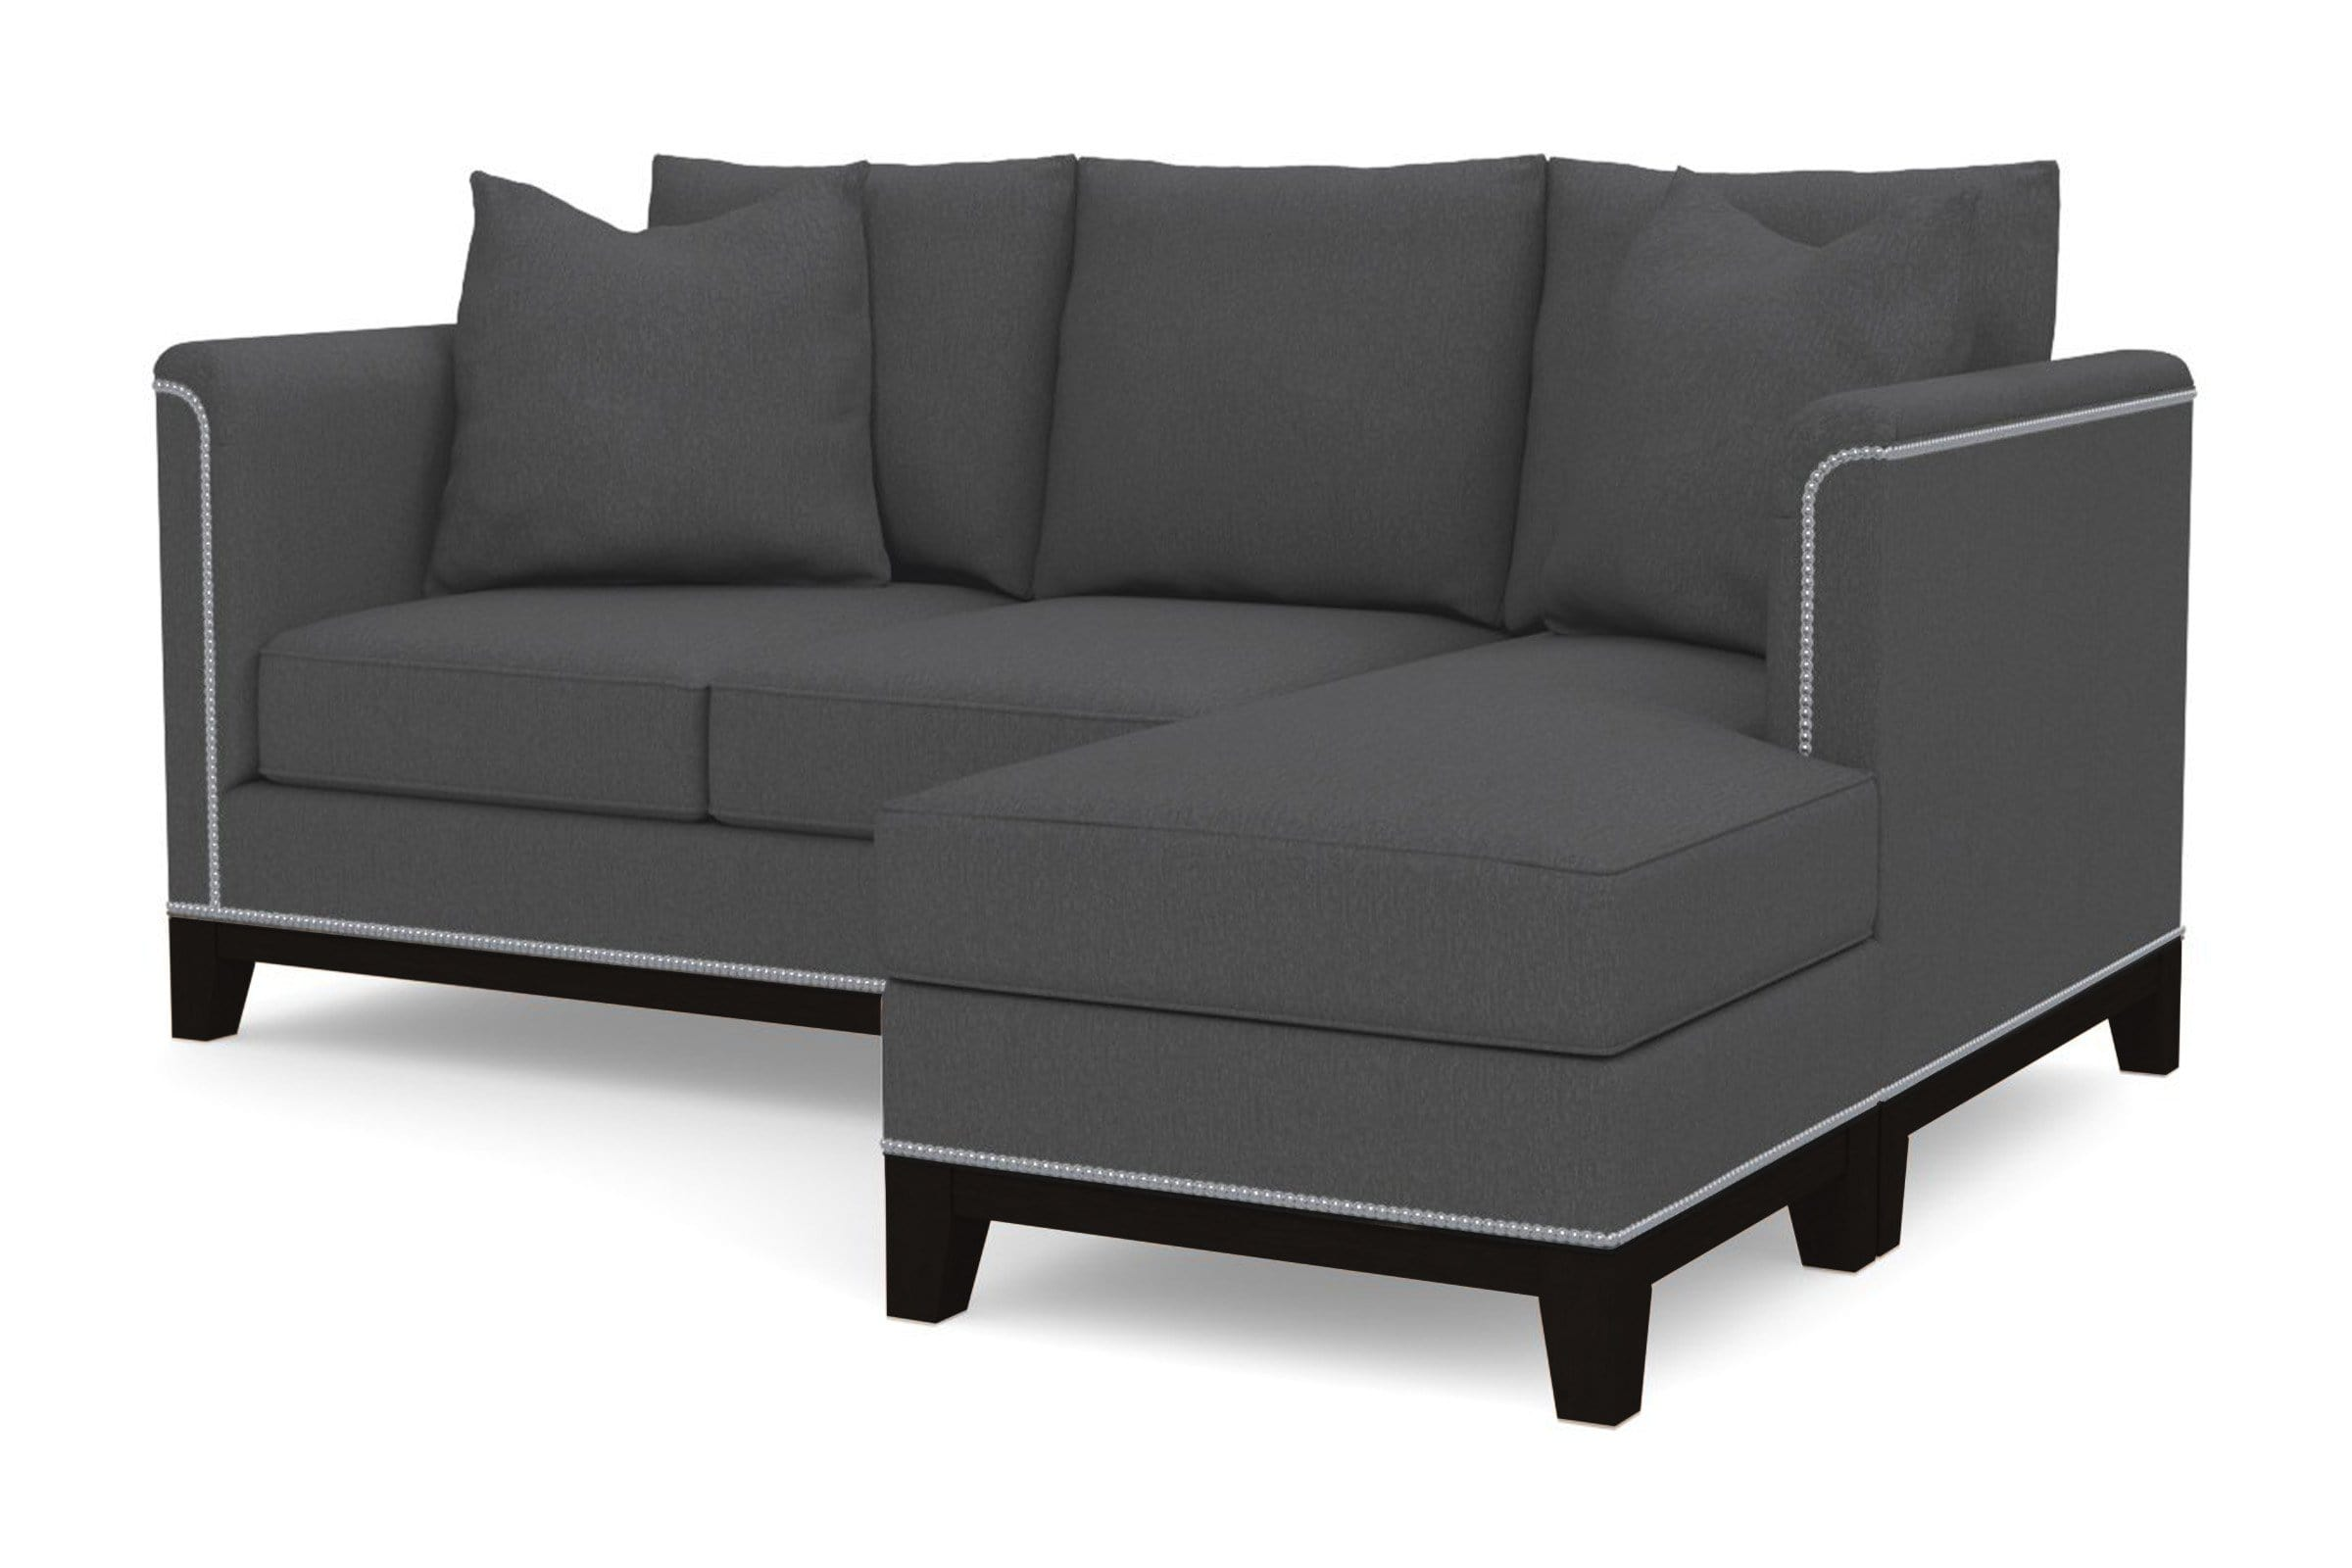 La Brea Reversible Chaise Sleeper Sofa - Grey -  Pull Out Couch Bed Made in the USA - Sold by Apt2B